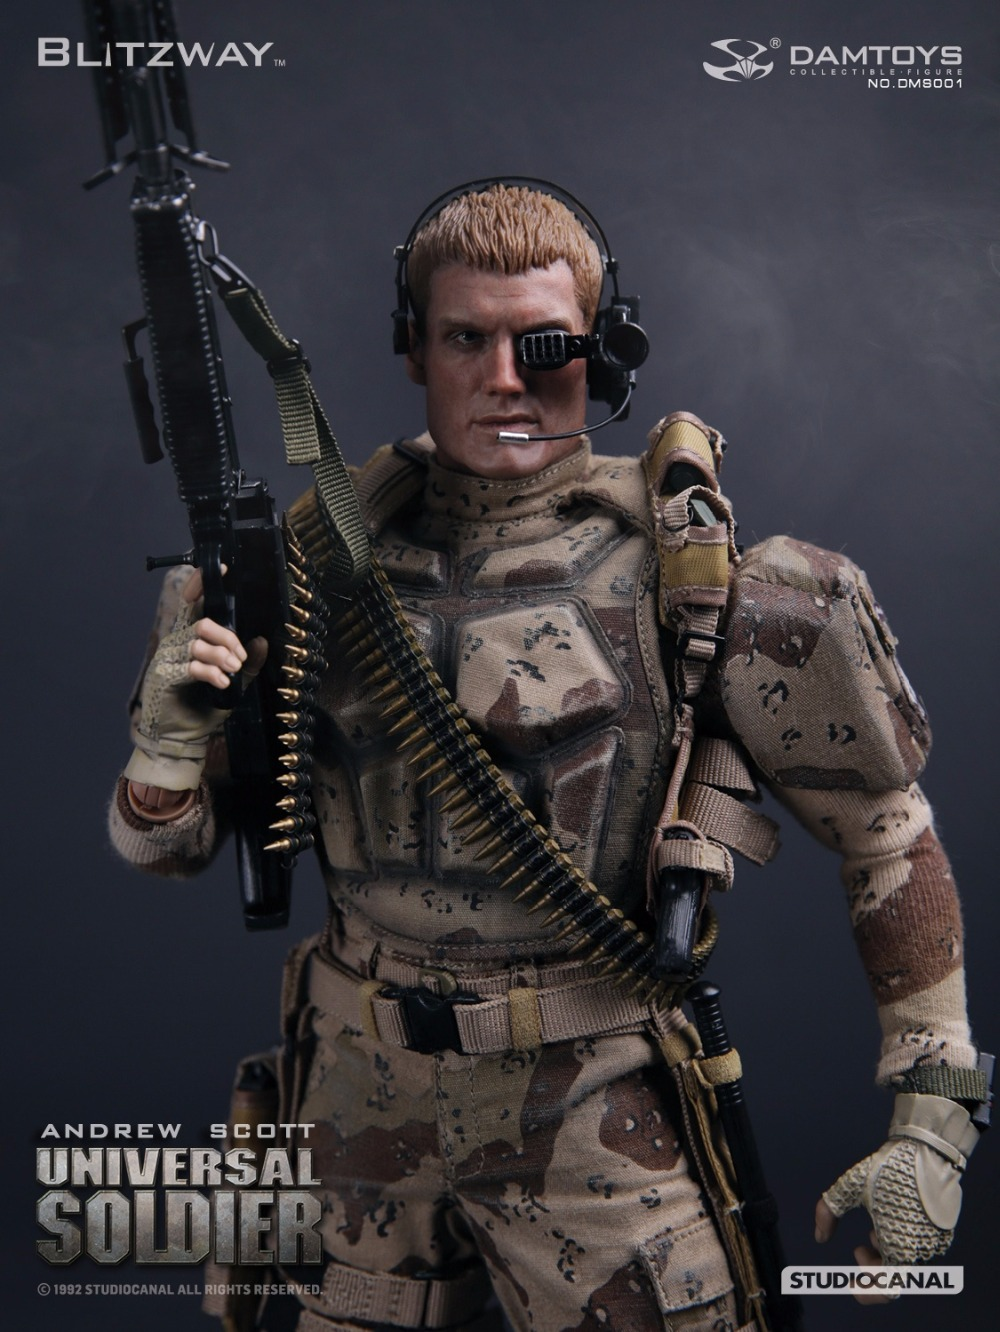 1/6 scale Collectible military figure Universal Soldier Andrew Scott Dolph Lundgren 12 action figure doll model toy neca planet of the apes gorilla soldier pvc action figure collectible toy 8 20cm